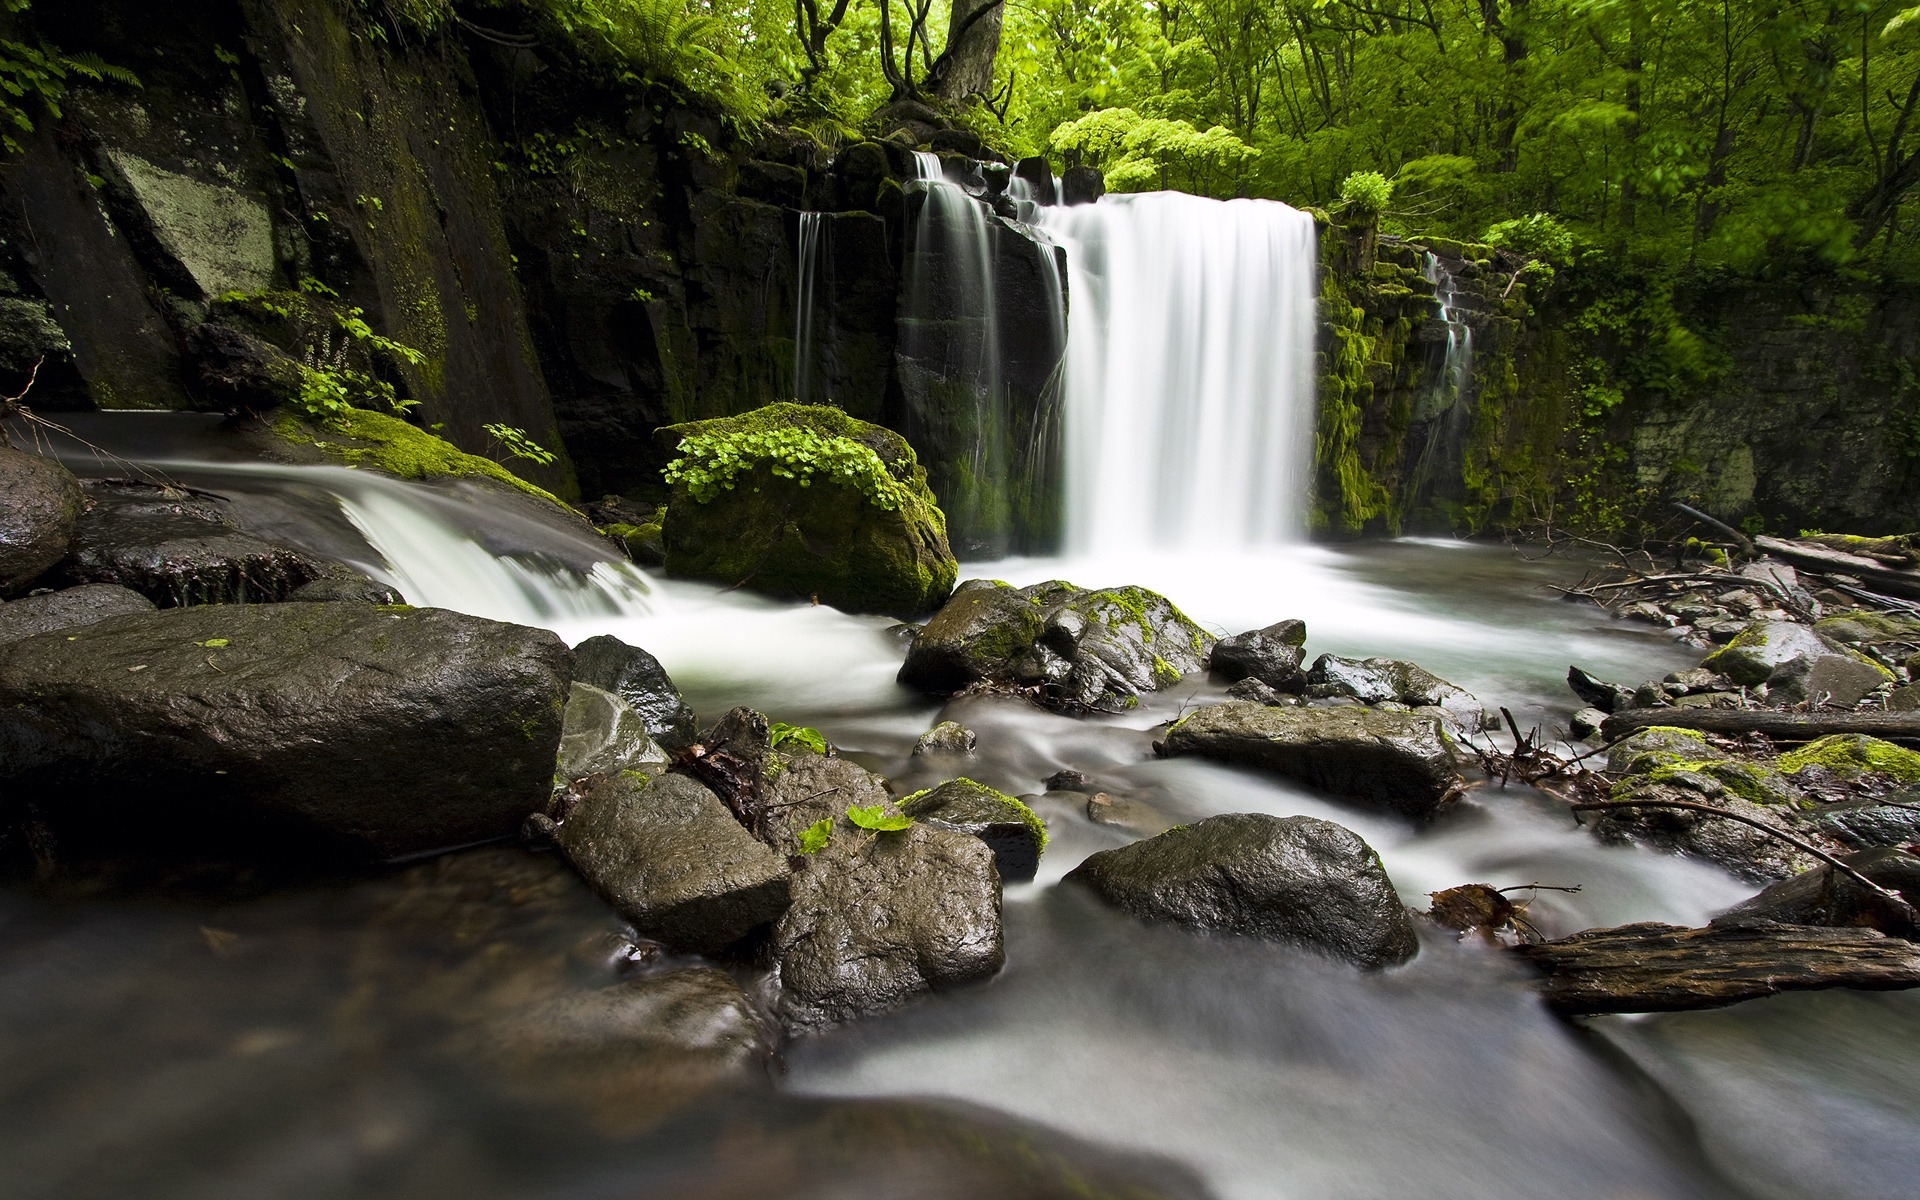 WallpapersWide Waterfall and Waterscape Wallpapers  Free Download HD Amazing Images 1920x1200